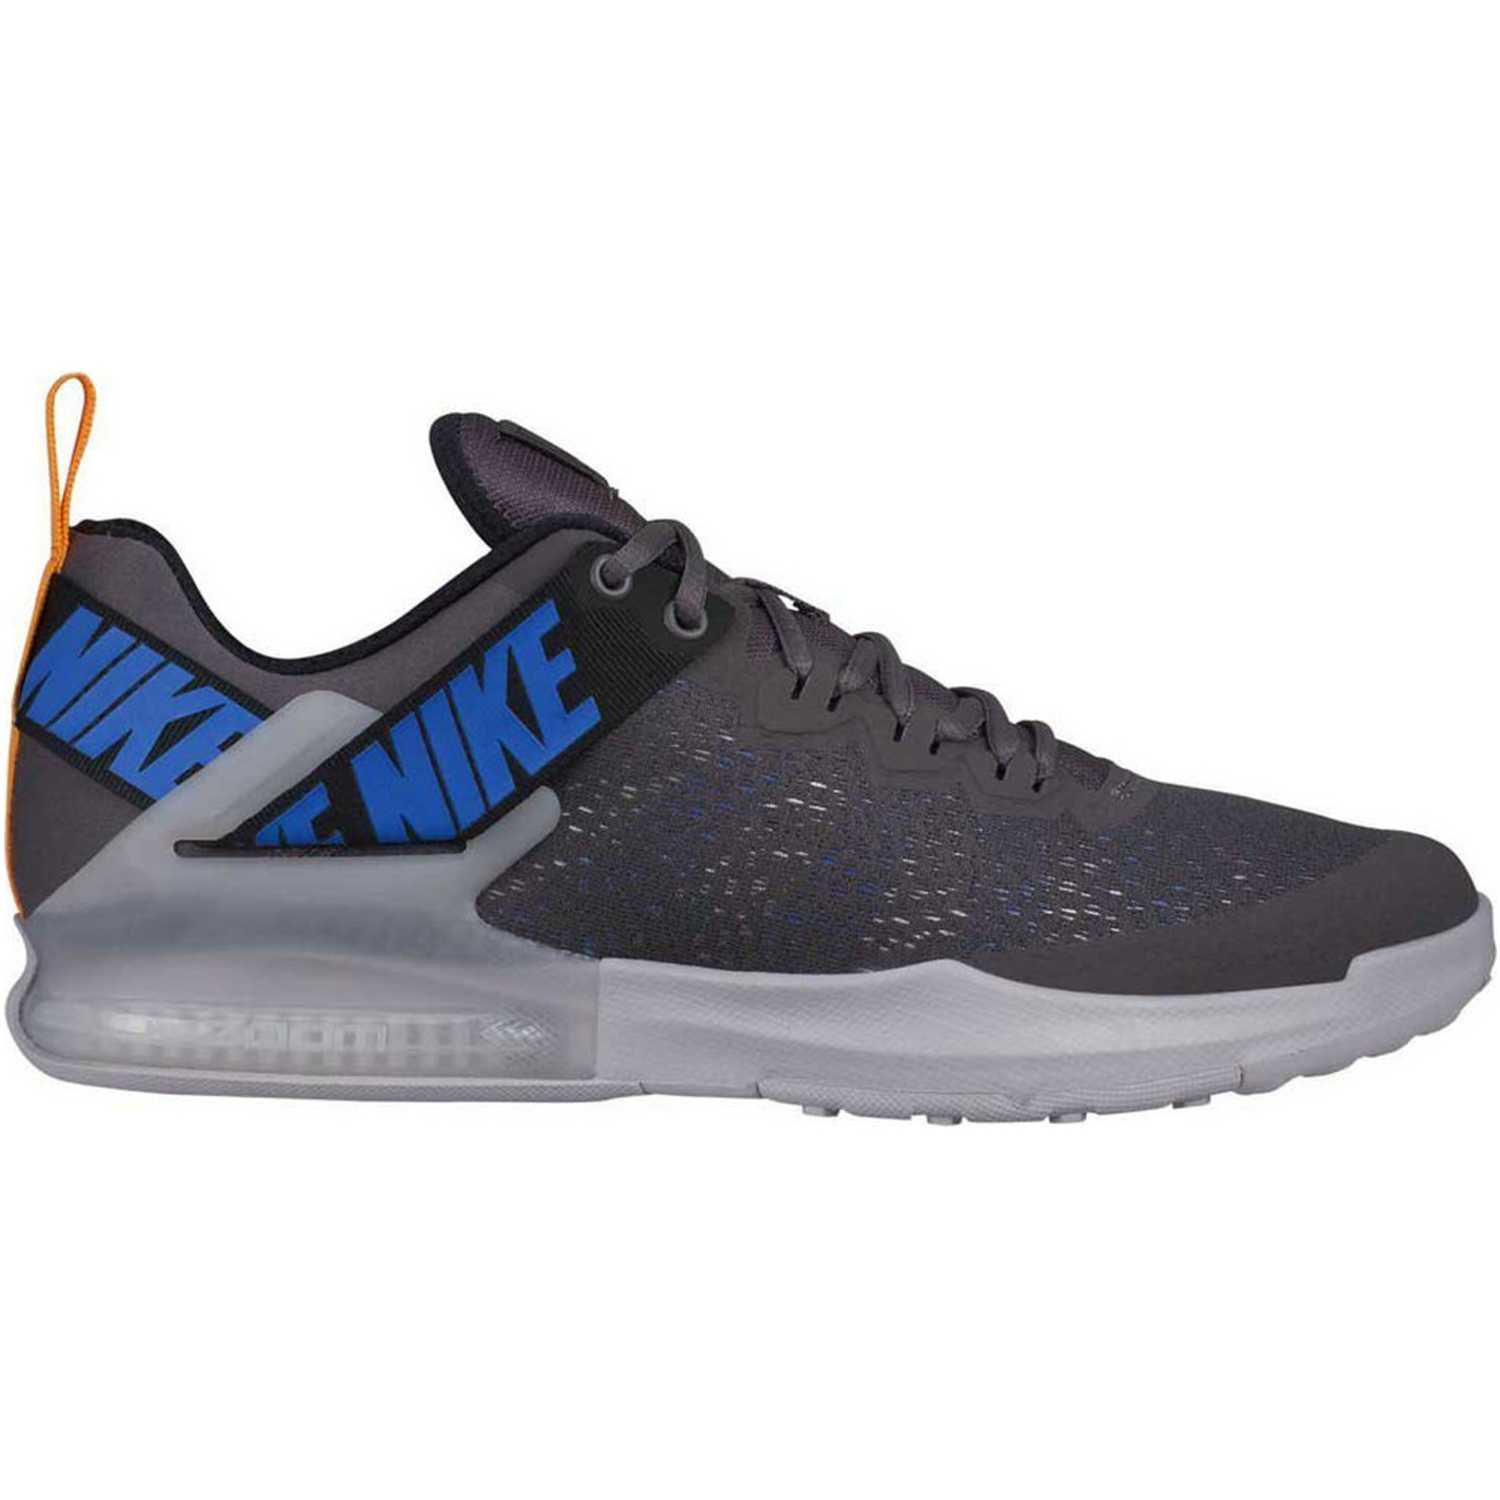 Zapatillas deportivas Nike Zoom Domination Tr 2